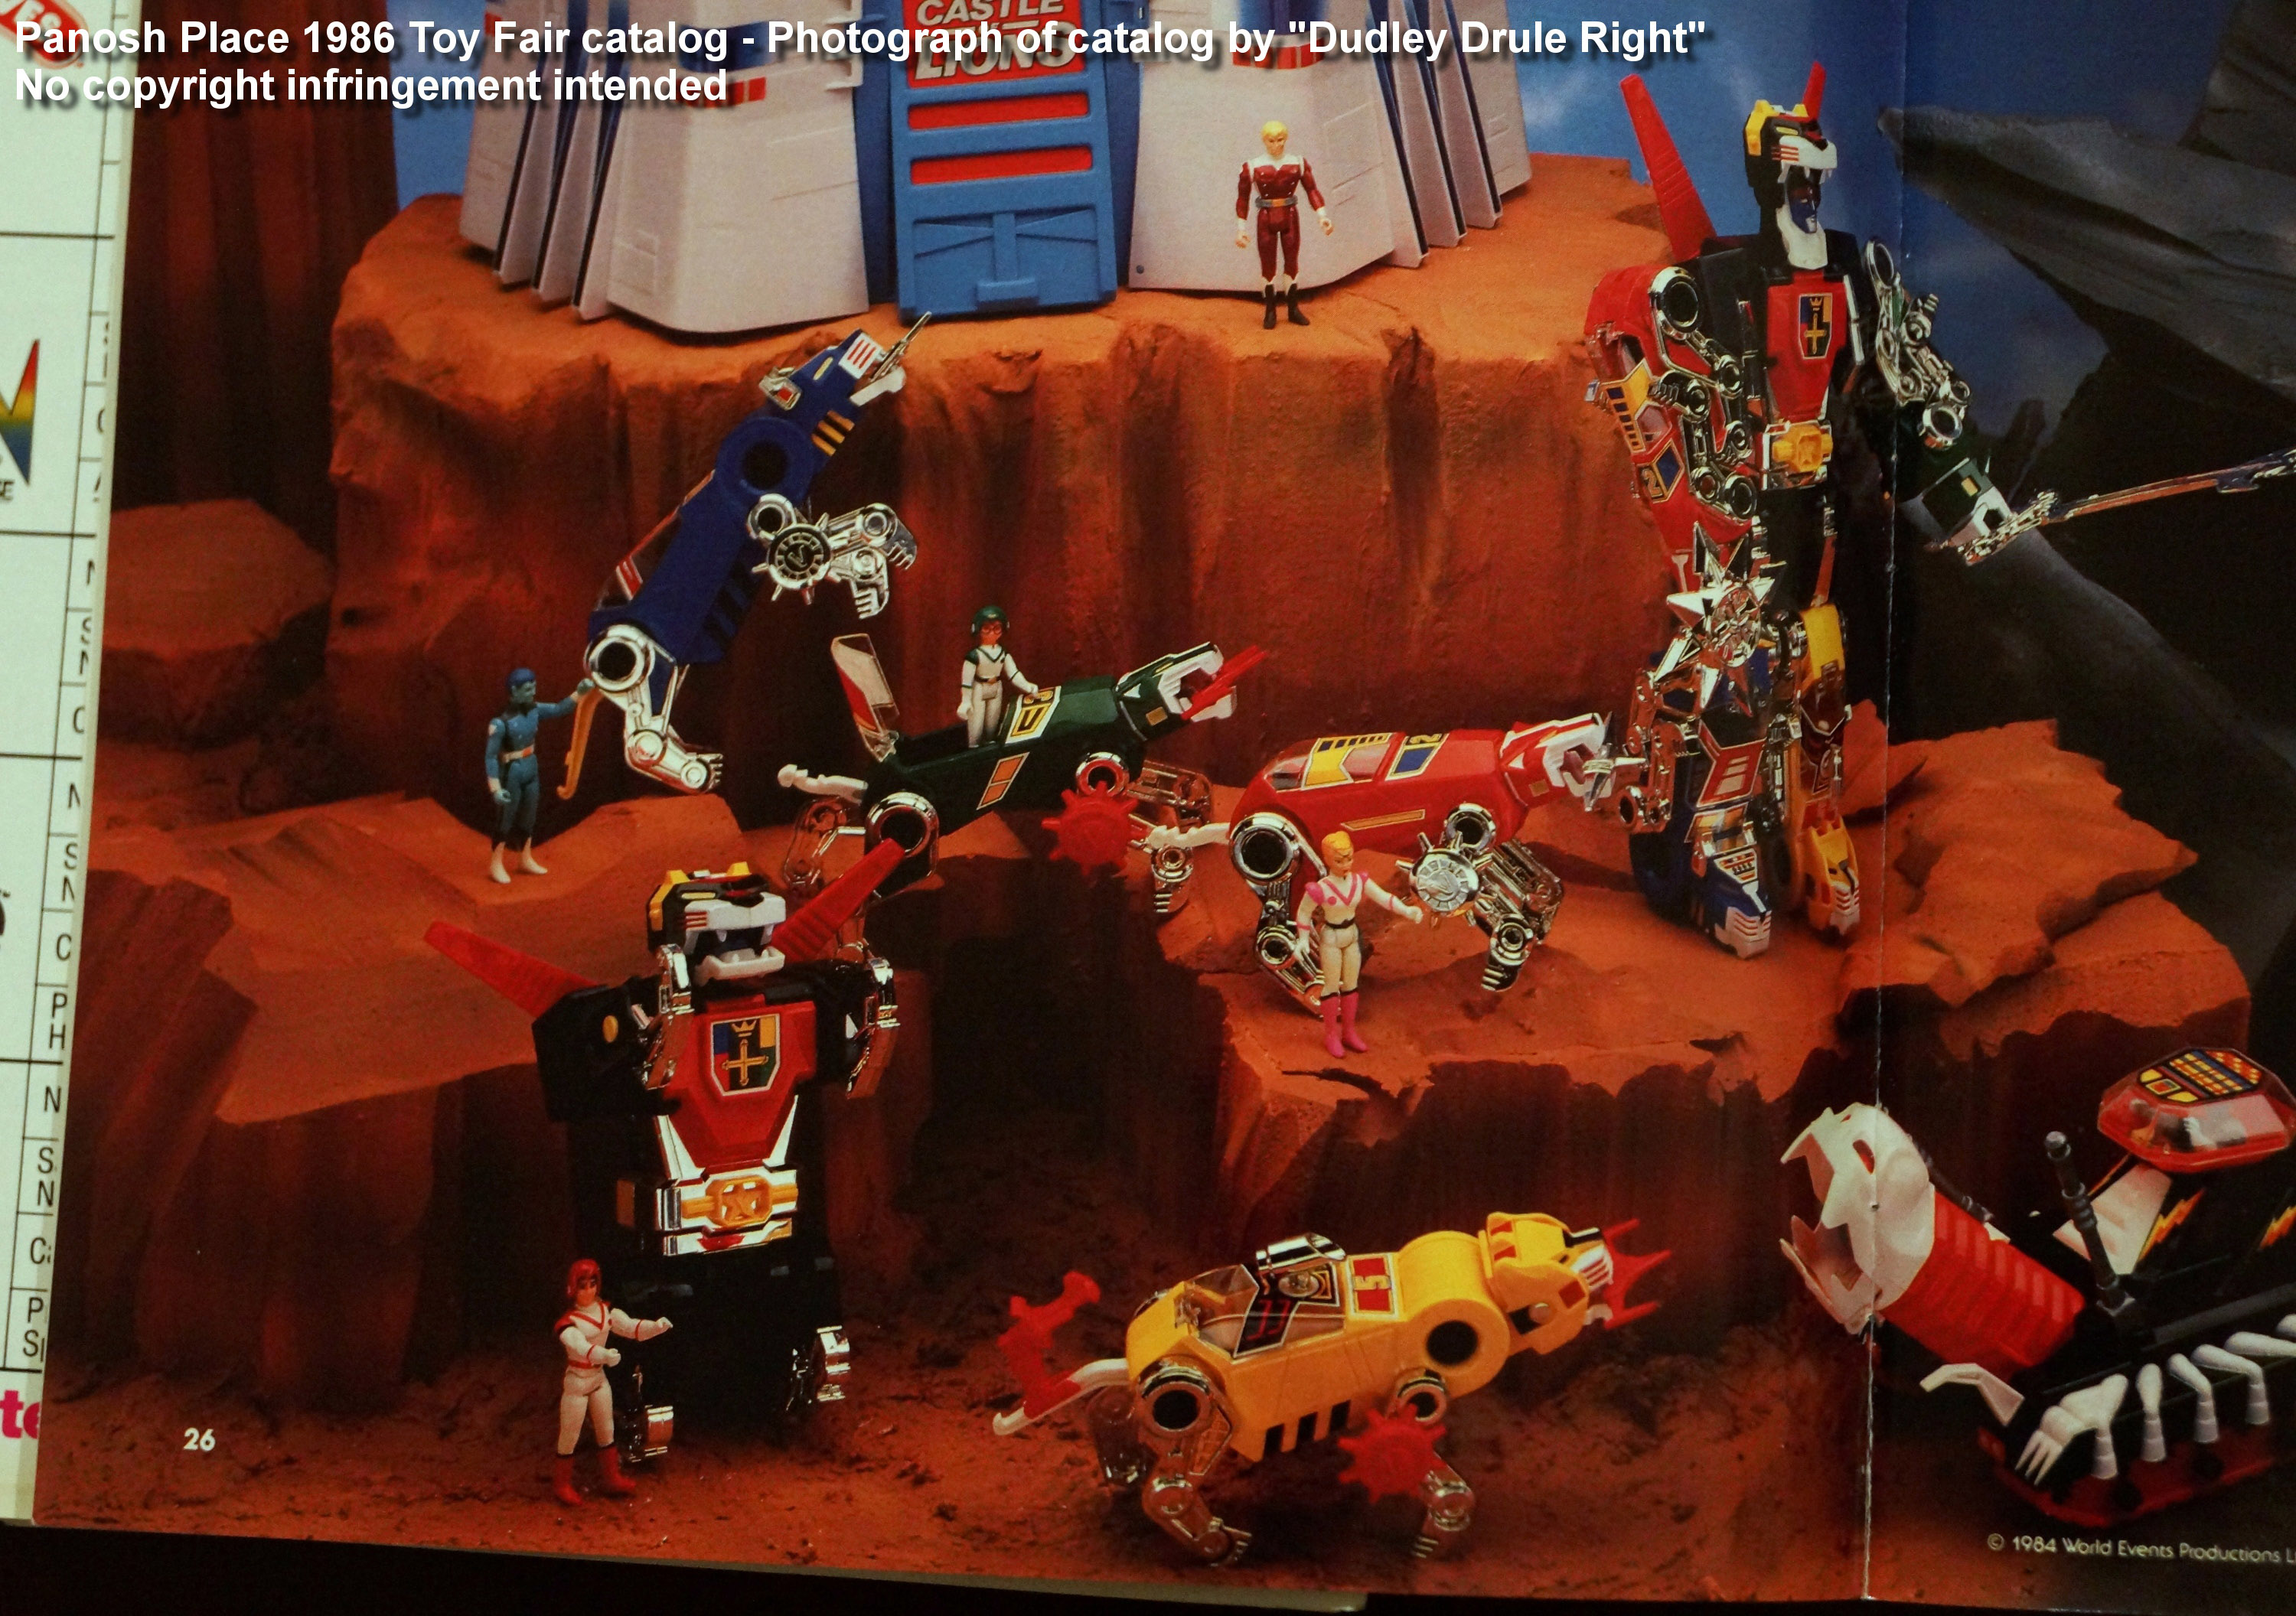 Panosh Place 1986 Toy Fair Catalog - Page 26 Top (All 1986 Voltron toys)